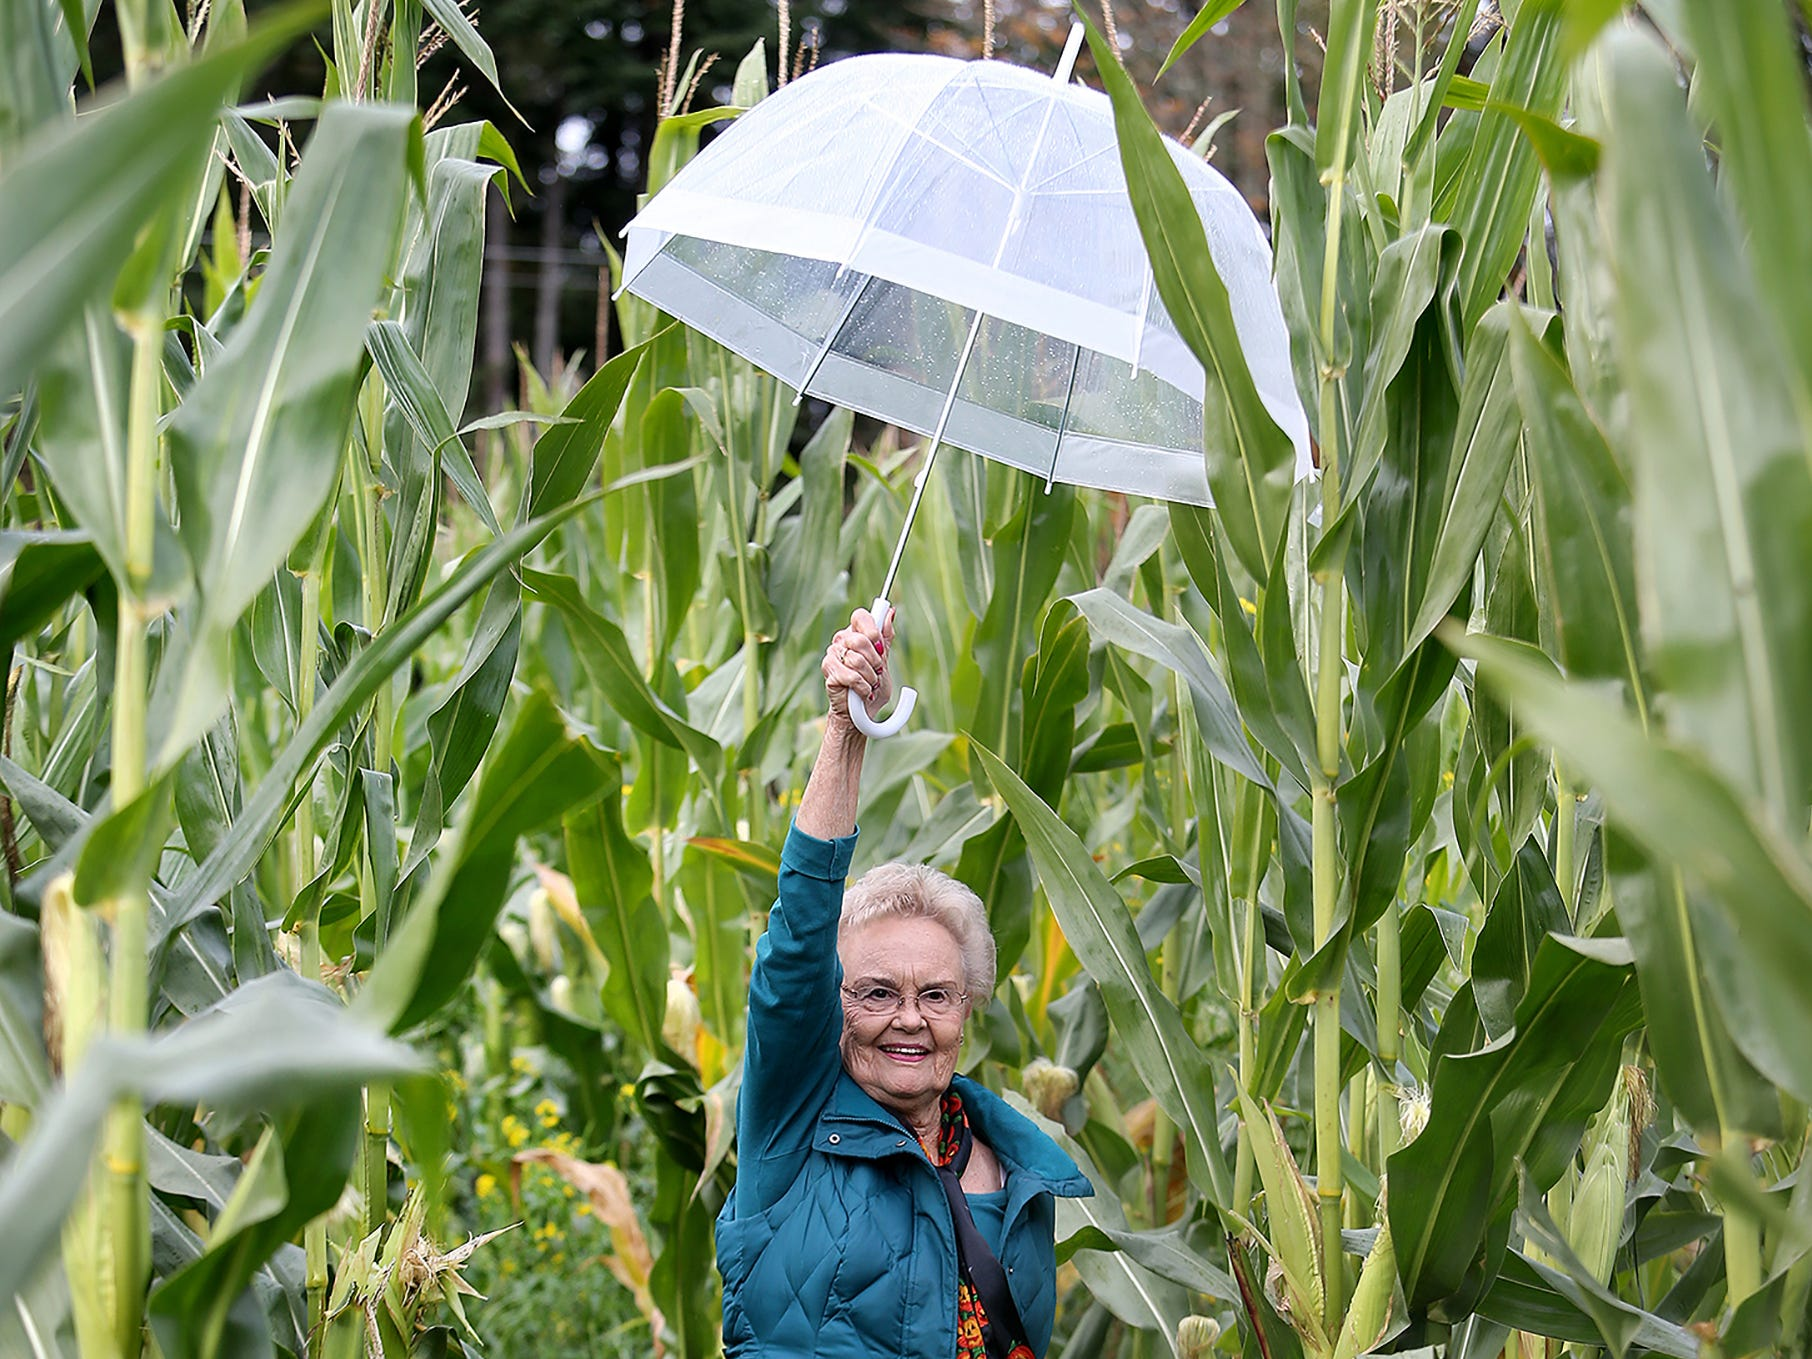 Carol Hostetter of Bremerton puts her umbrella up high to get through the corn stalks in the corn maze at Pheasant Fields Farms in Silverdale on Monday, October, 29, 2018. The maze is open daily from 10 a.m. until 6 p.m. until November first.